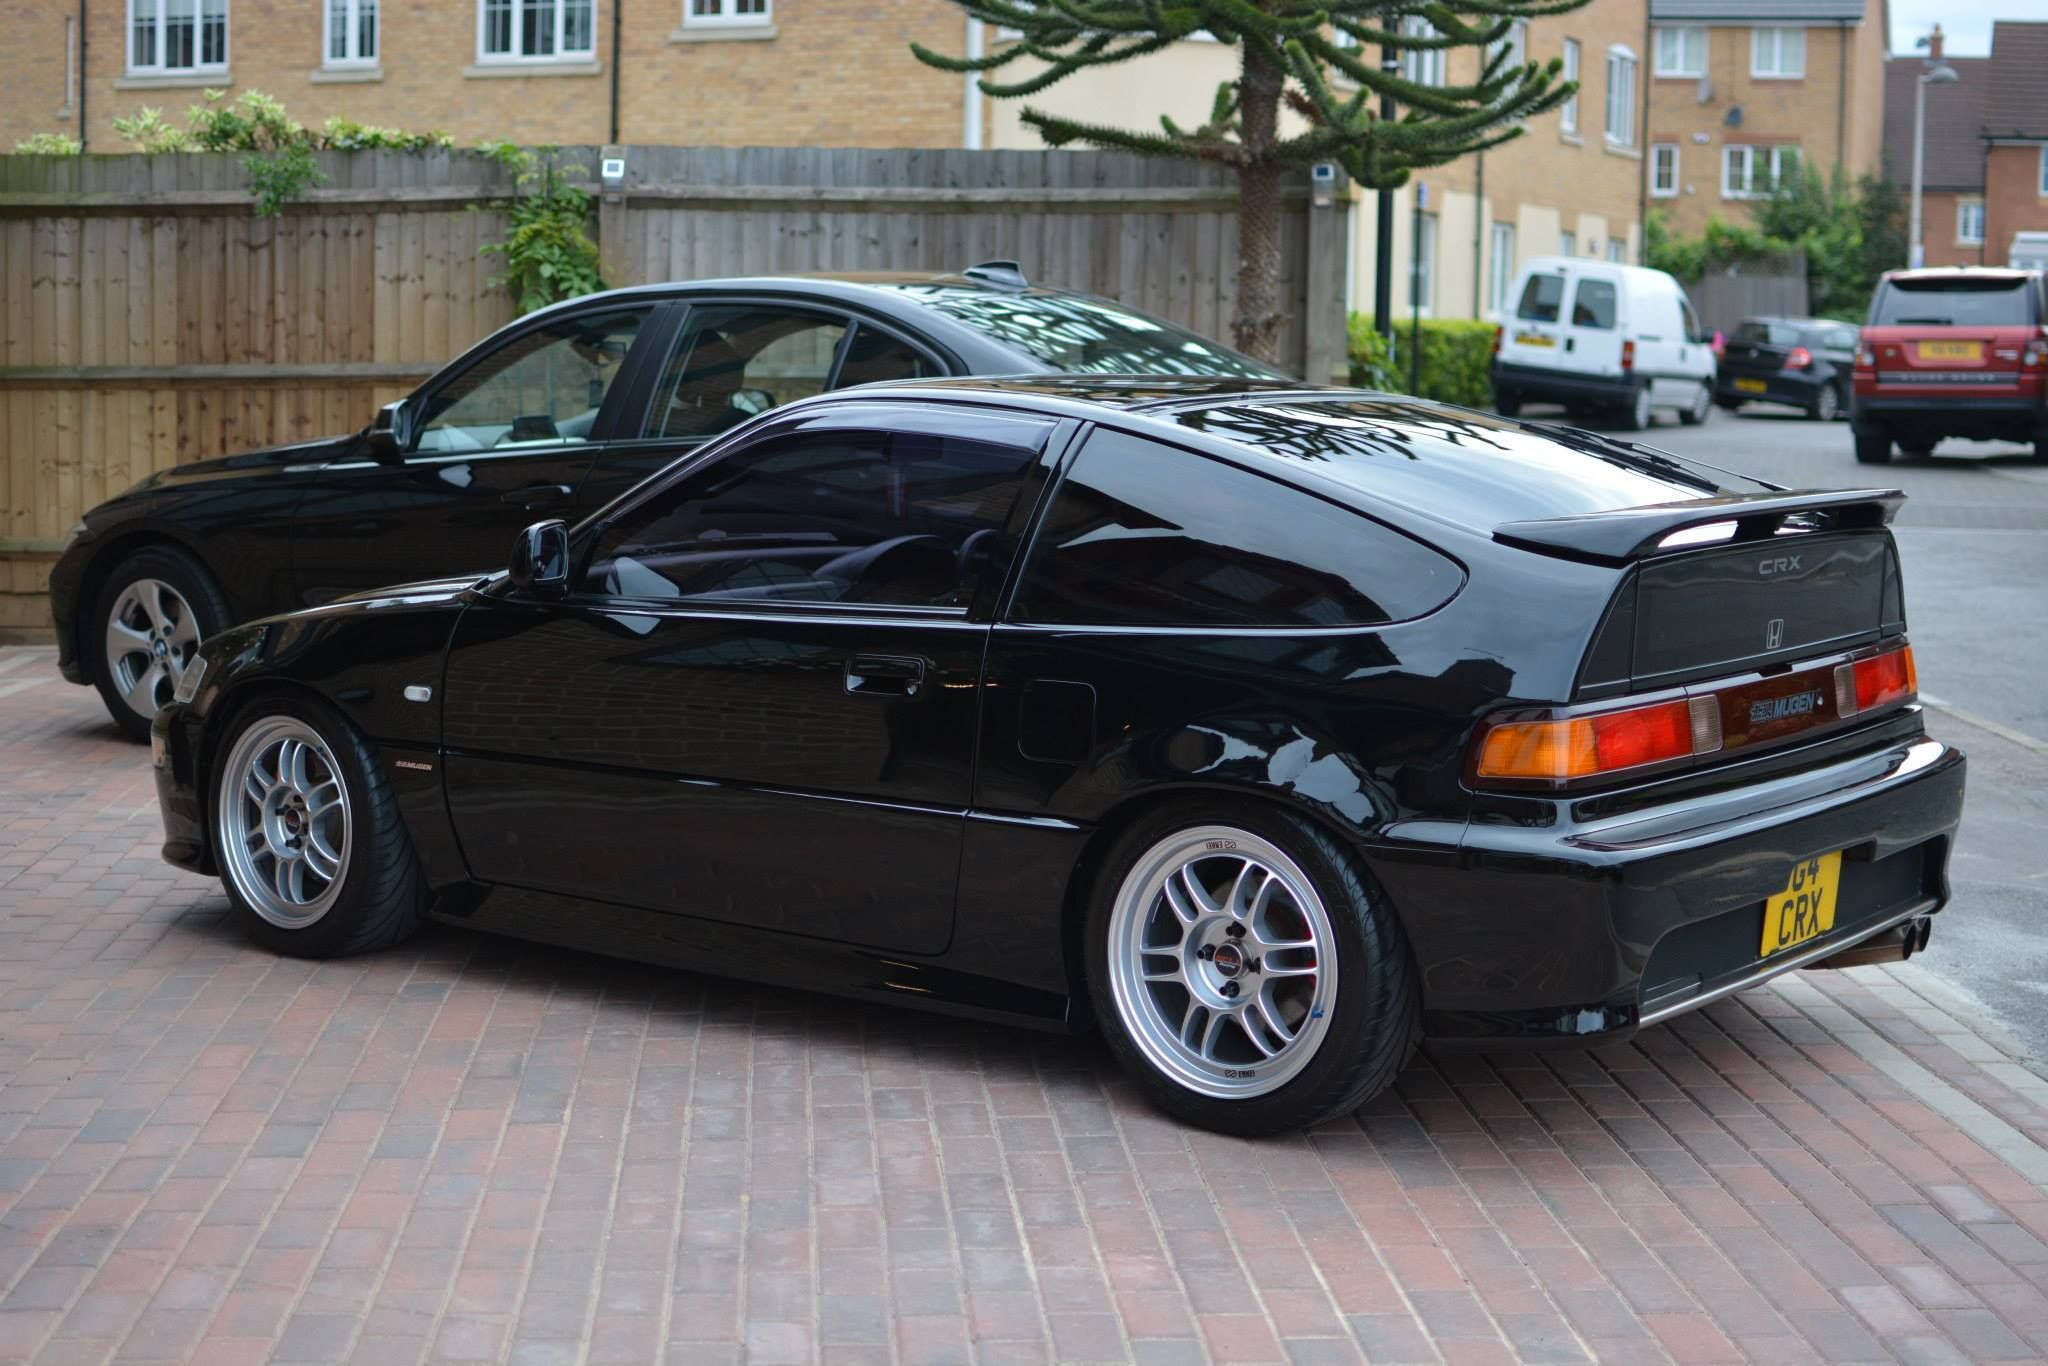 Enkei Wheels Japan Cars Honda Crx Honda และ Vehicles